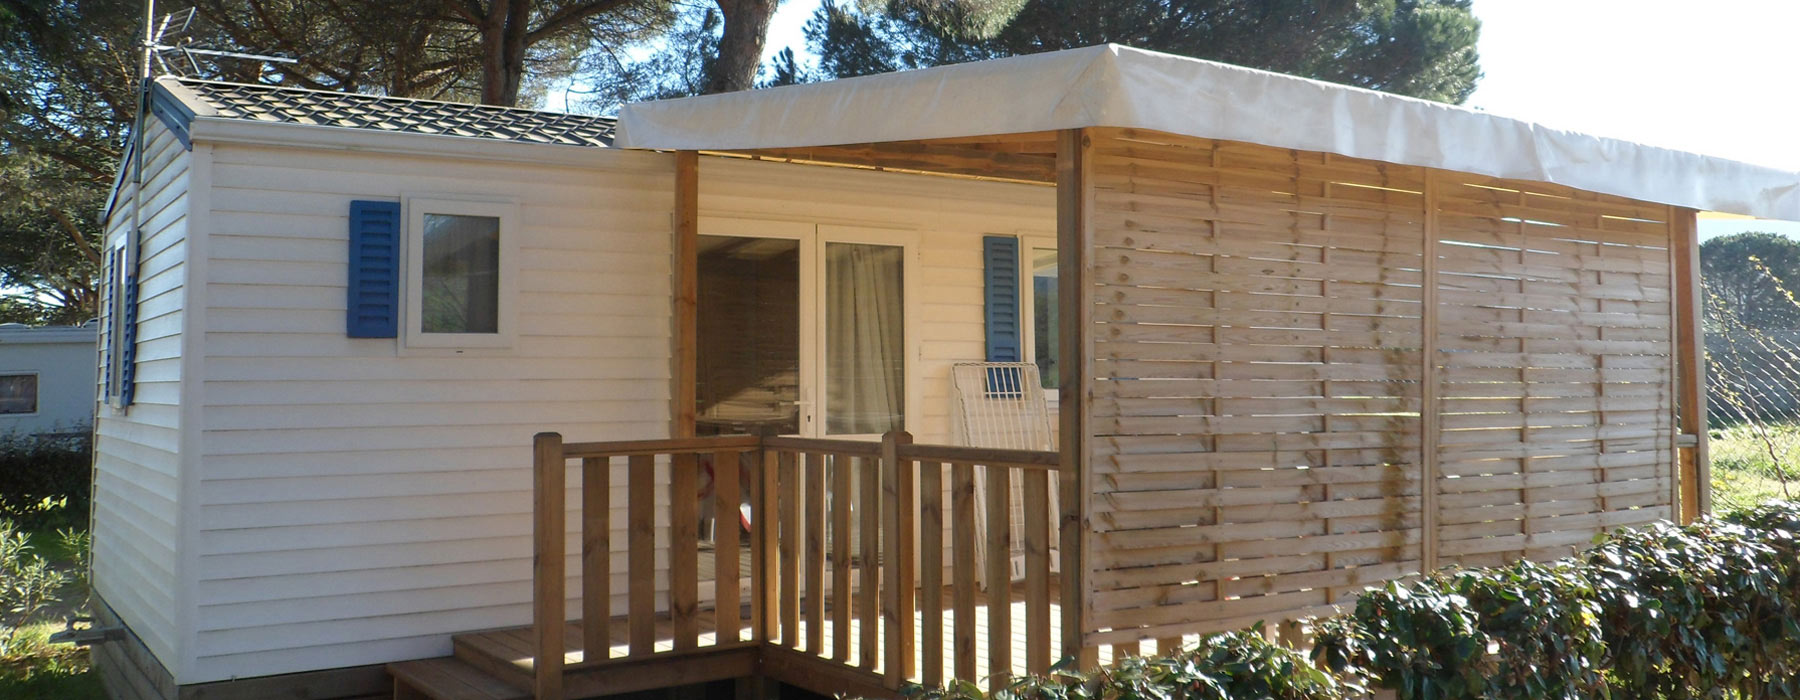 location mobil home Ceret